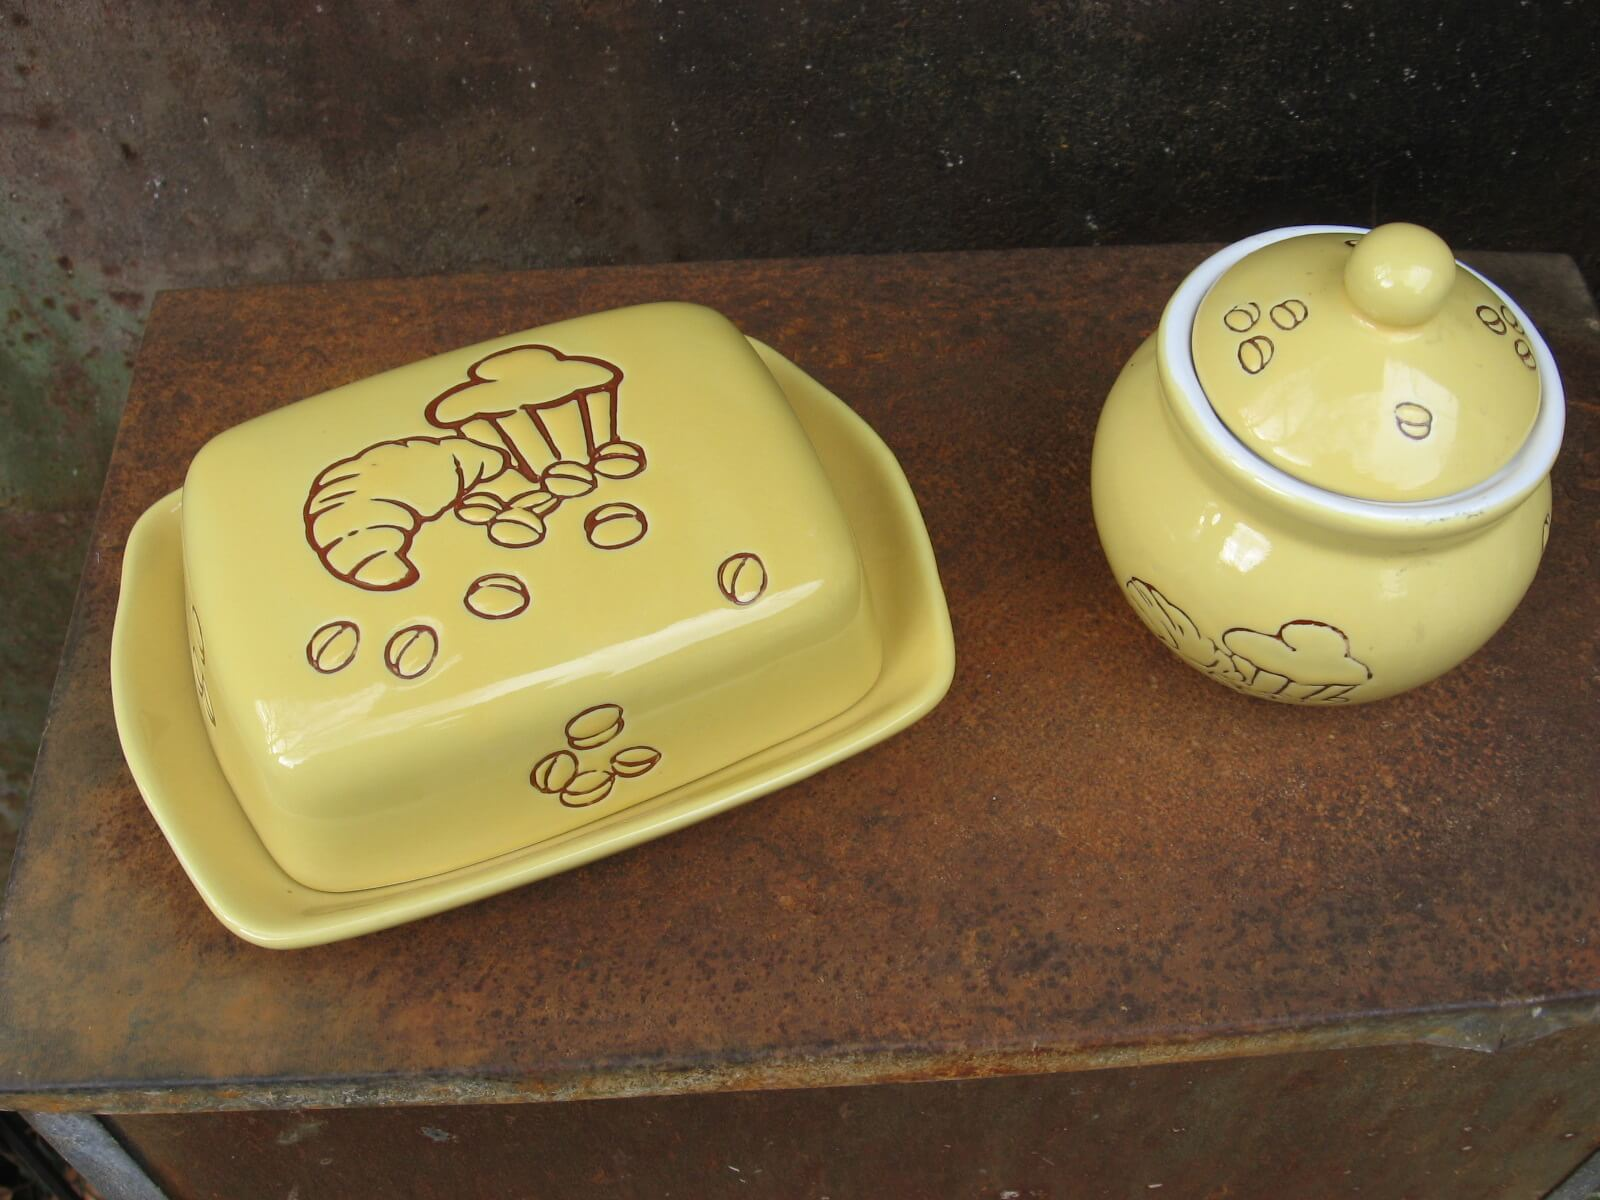 French croissant brioche butter dish jam pot ceramic pottery at PumpjackPiddlwick